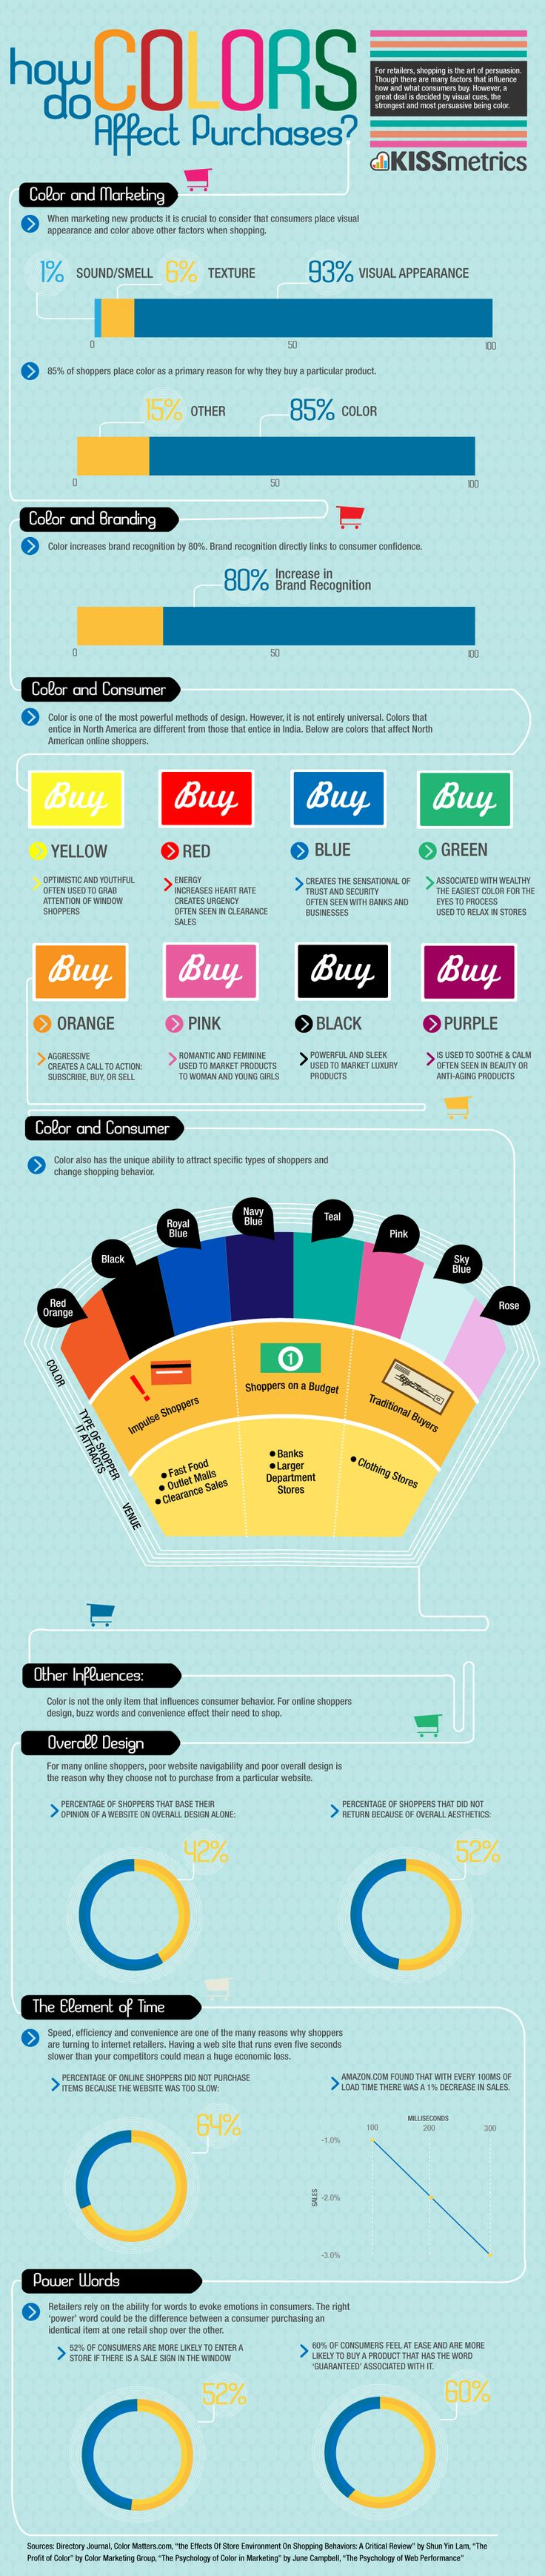 À conserver pour référence. how do colors affect purchases? - Awesome Infographic, great information for package design/visual merchandising.